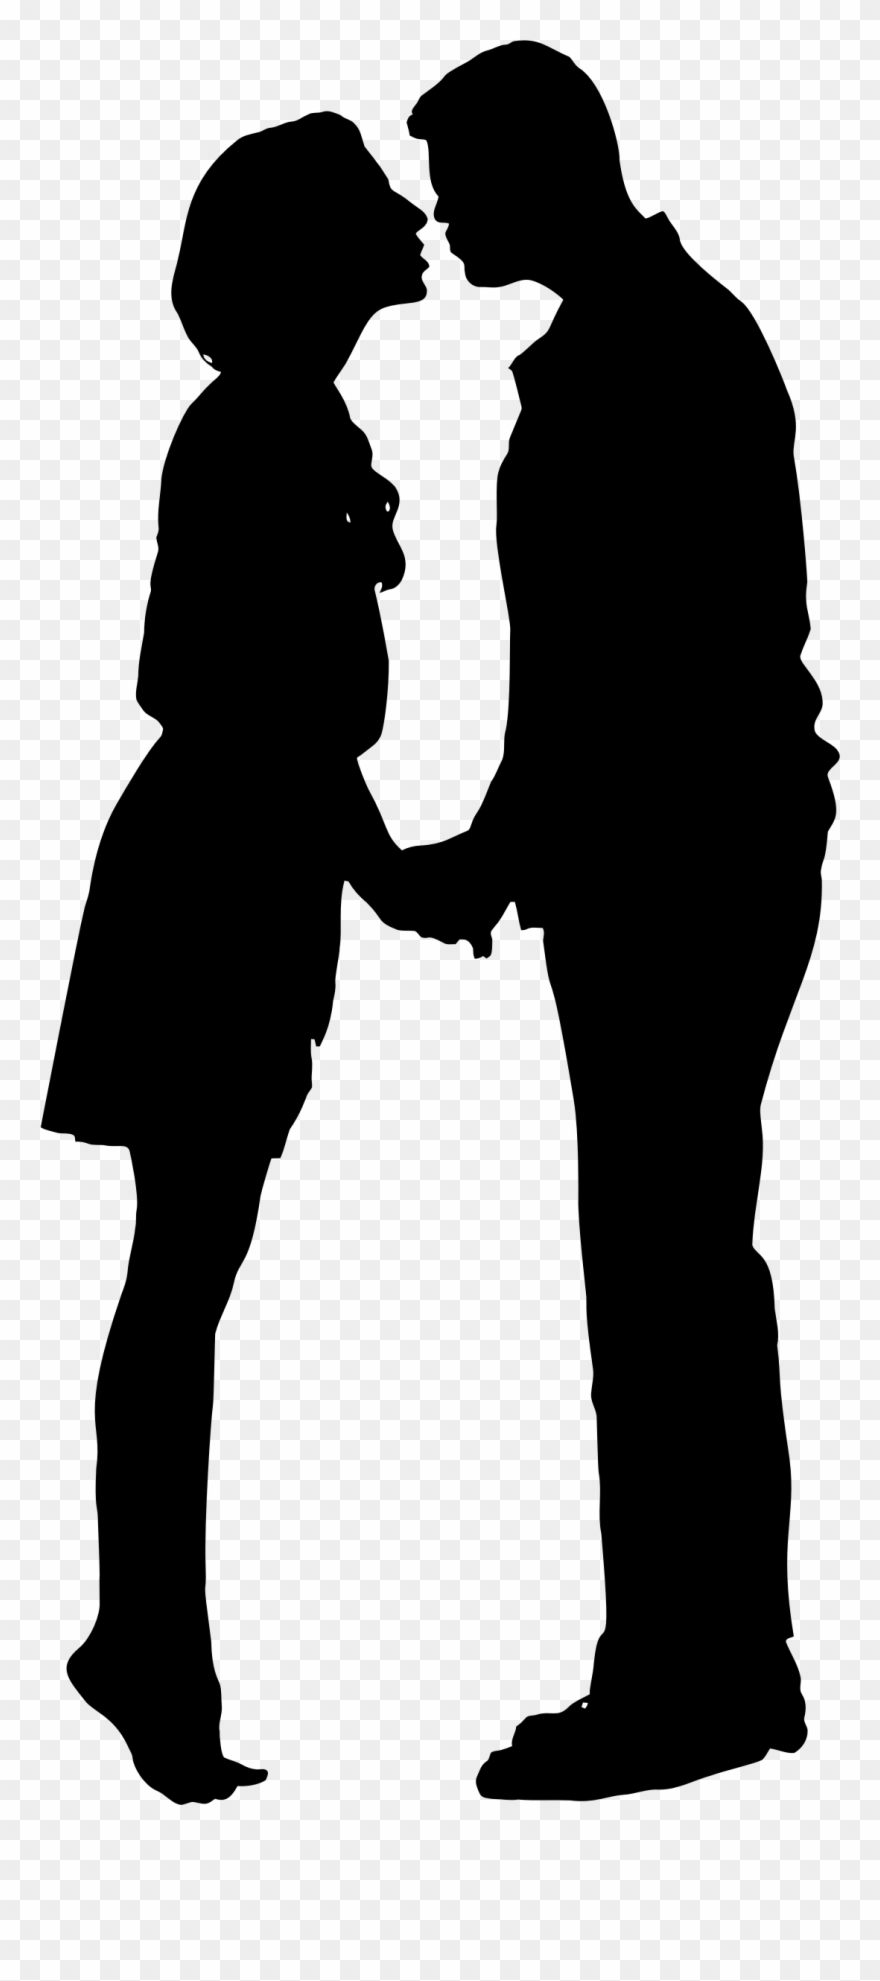 big image love man and woman silhouette clipart 3572652 pinclipart love man and woman silhouette clipart